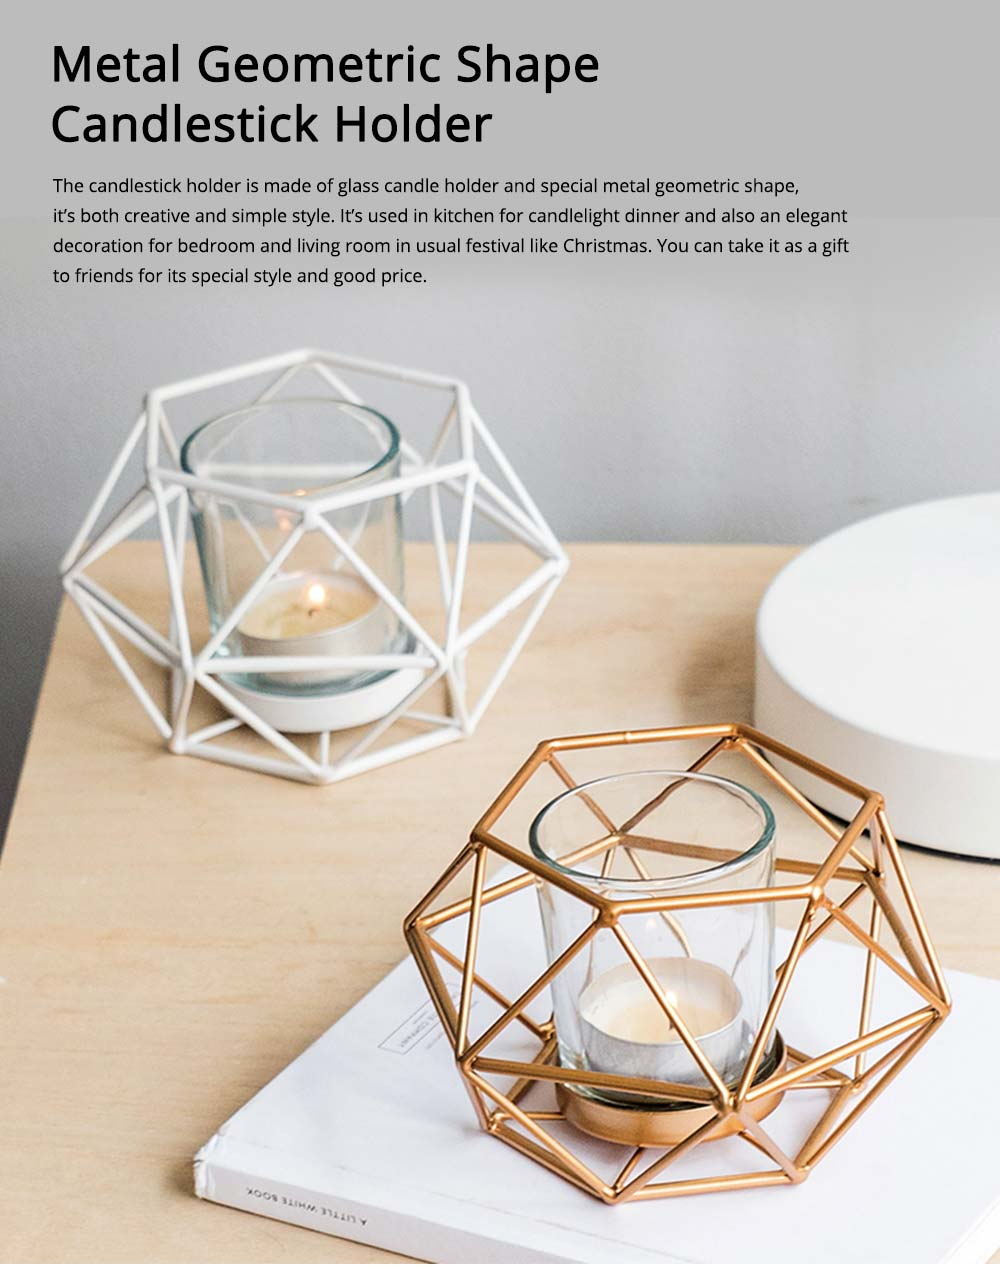 Simple Metal Candlestick Holder Geometric Shape for Candlelight Dinner 0